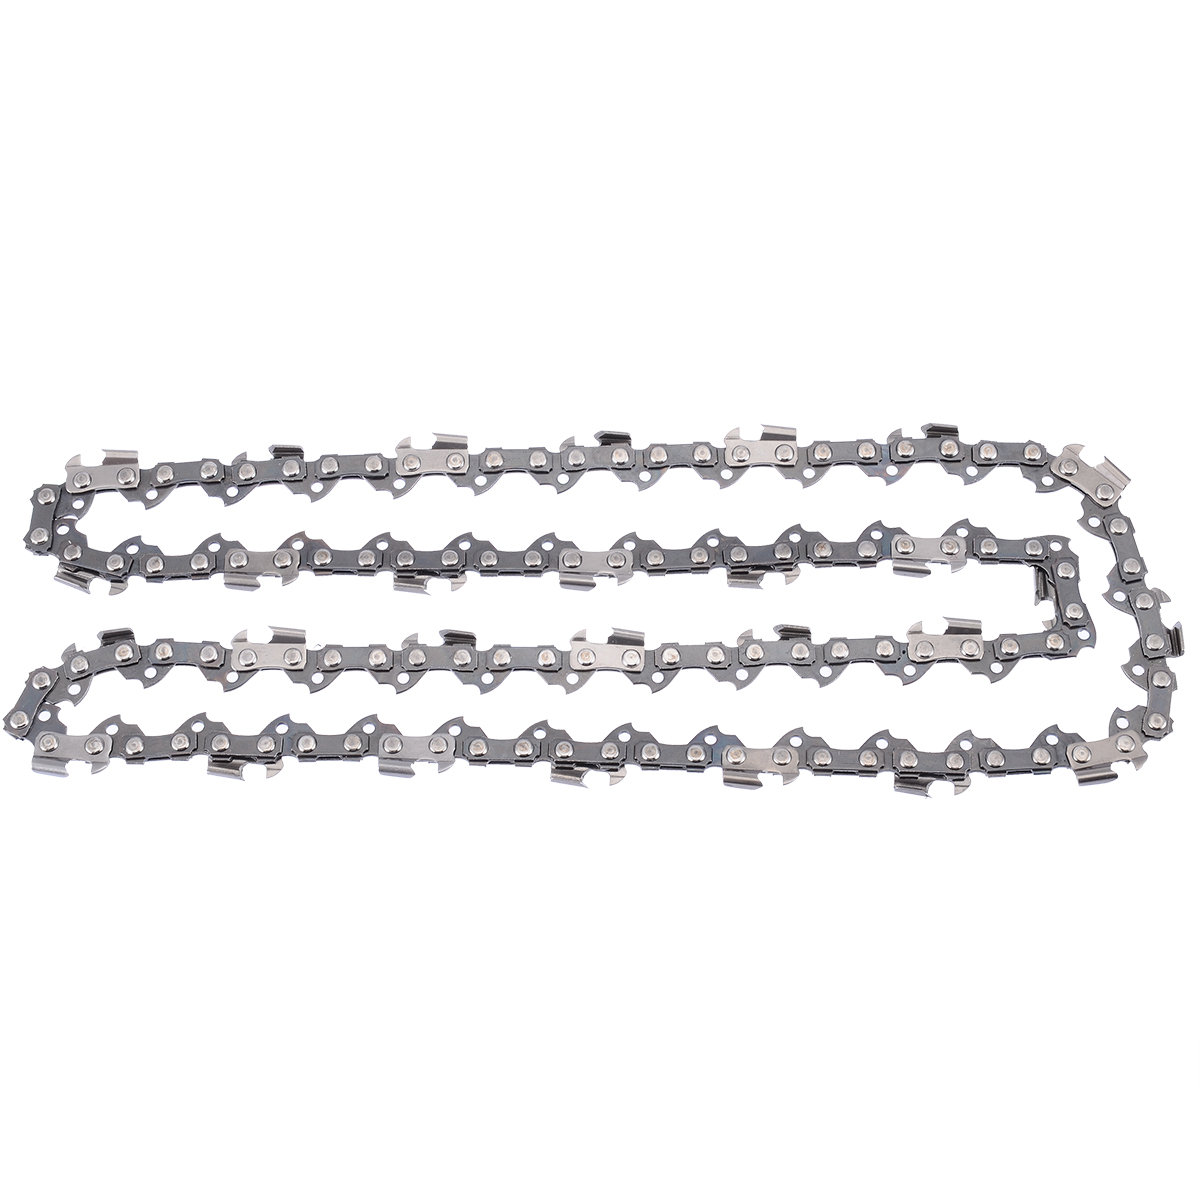 1Pcs Steel <font><b>16</b></font> <font><b>Inch</b></font> <font><b>Chainsaw</b></font> Saw <font><b>Chain</b></font> Blade For 3/8